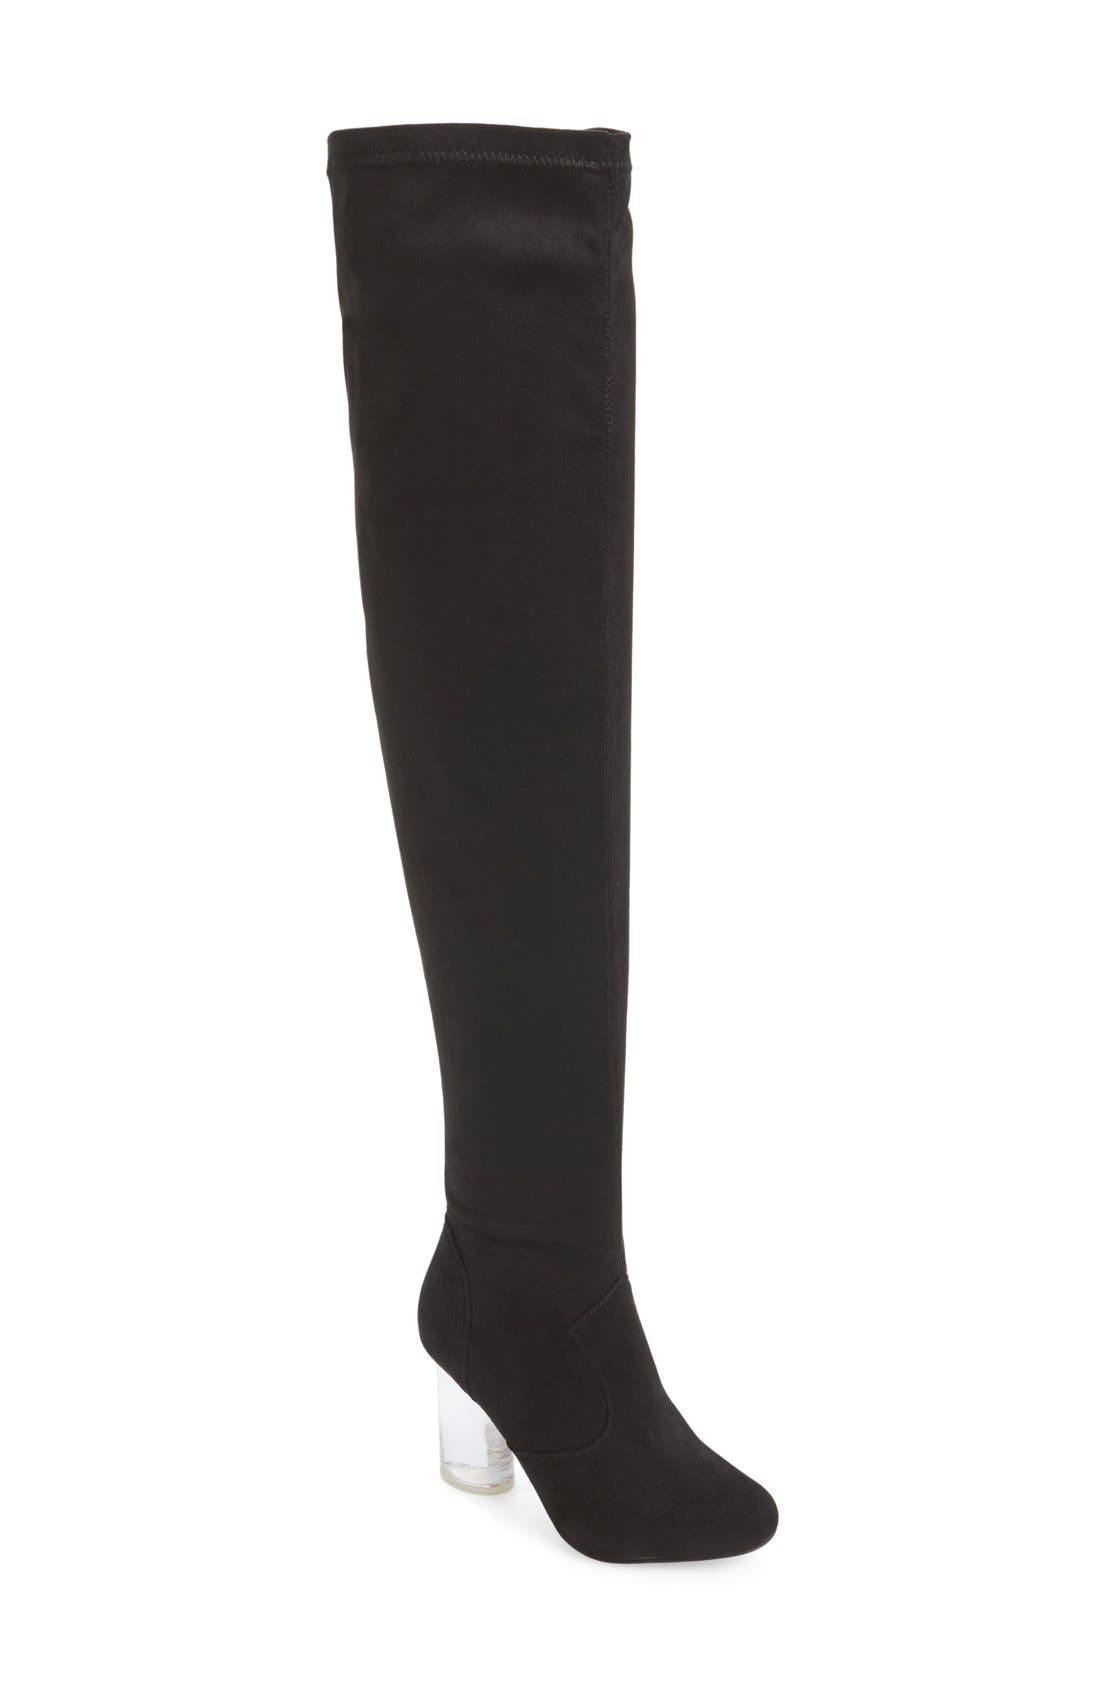 Alternate Image 1 Selected - Jeffrey Campbell 'Paradox' Over the Knee Boot (Women)